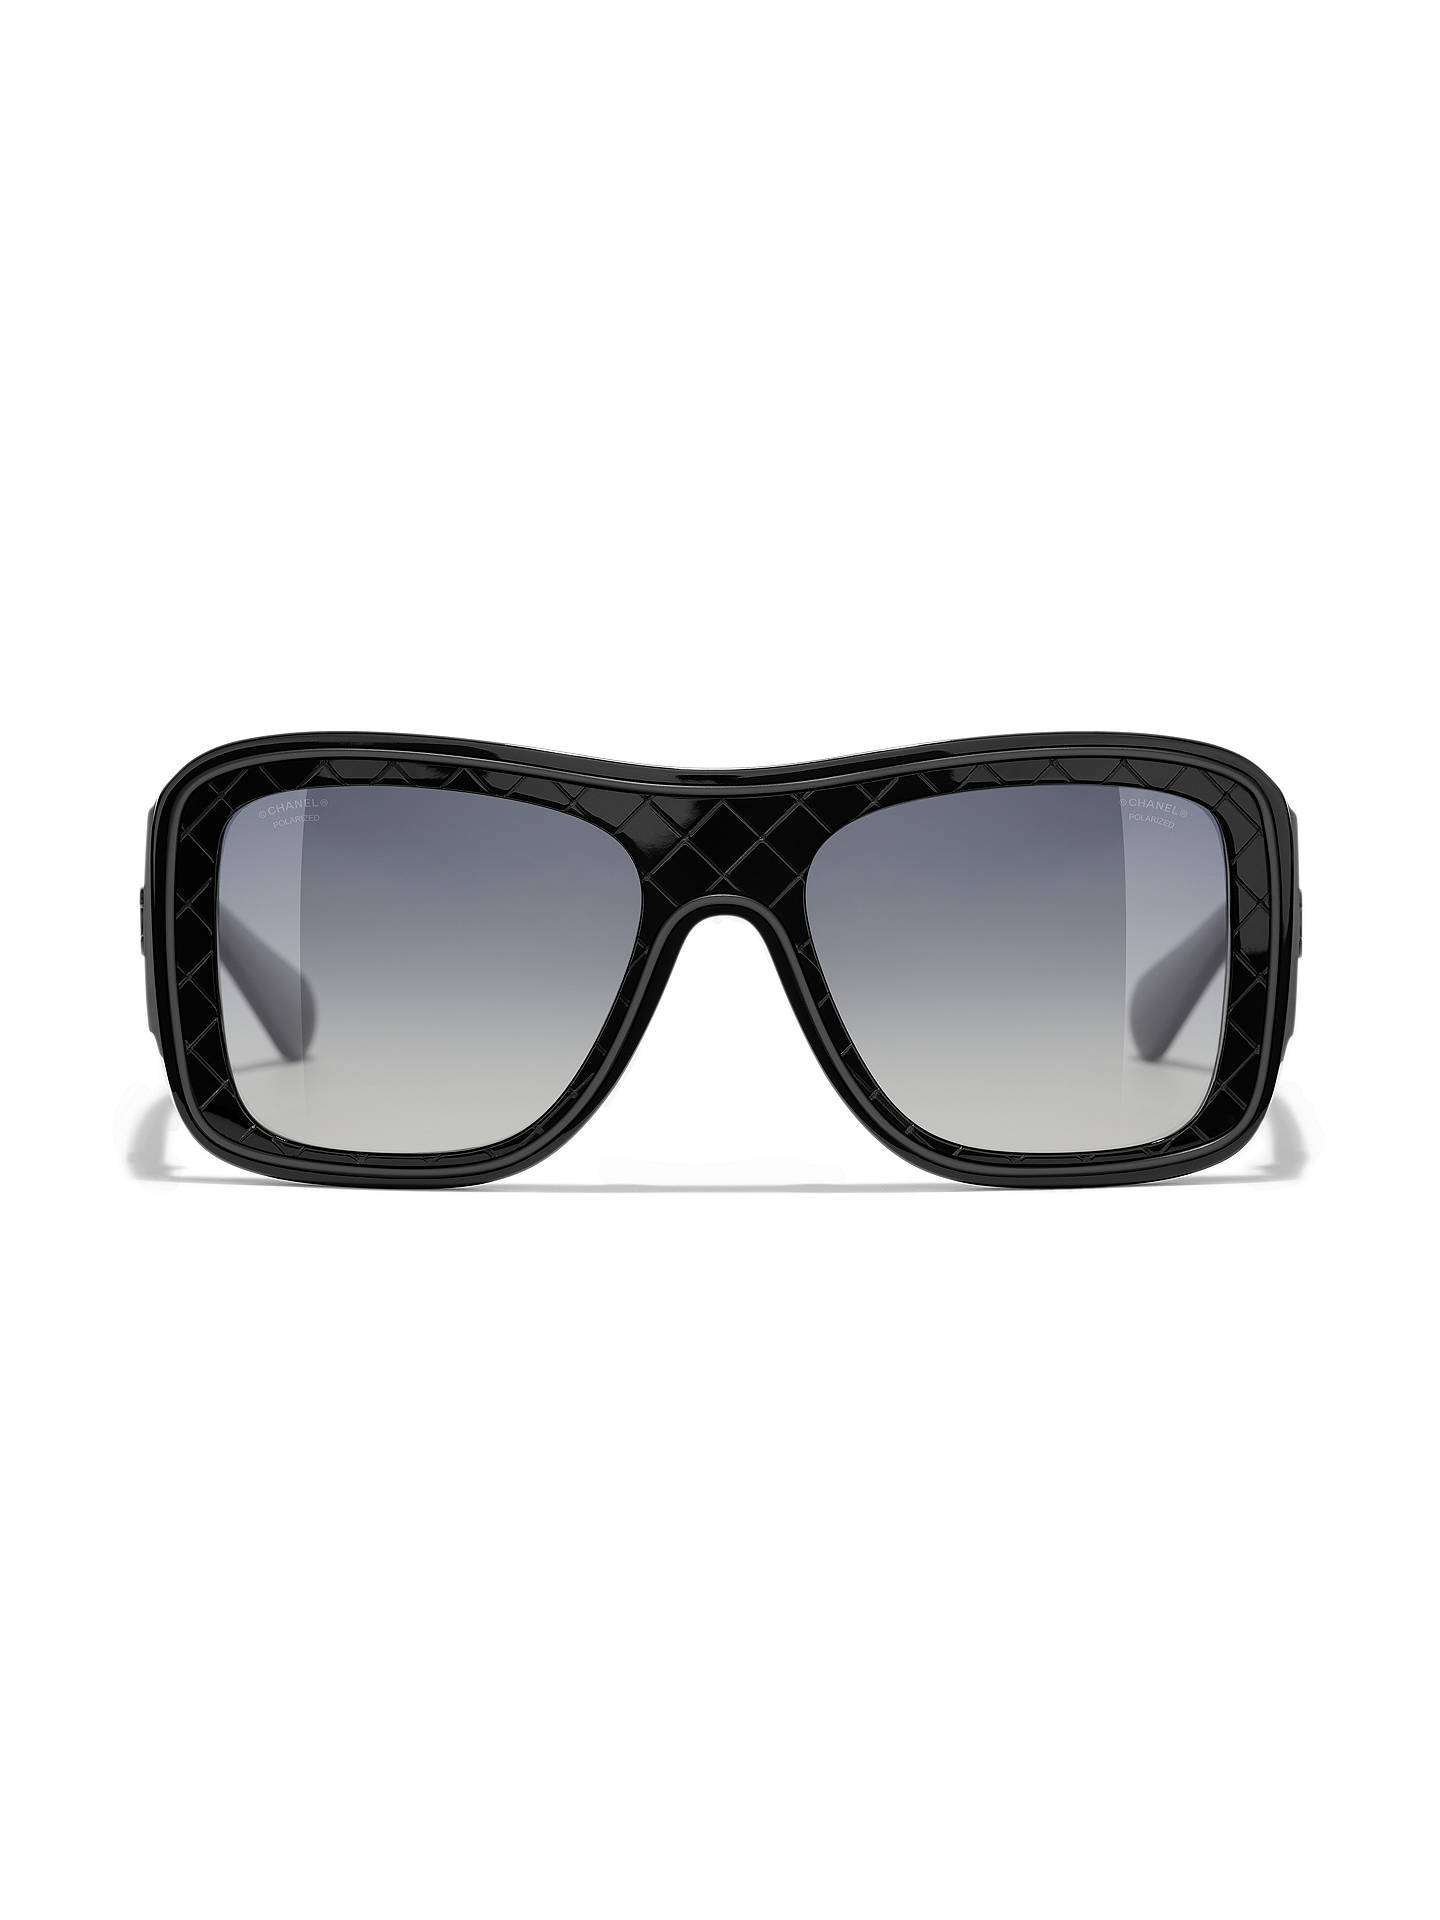 Buy CHANEL Polarised Square Sunglasses CH5395 Black/Grey Gradient Online at johnlewis.com